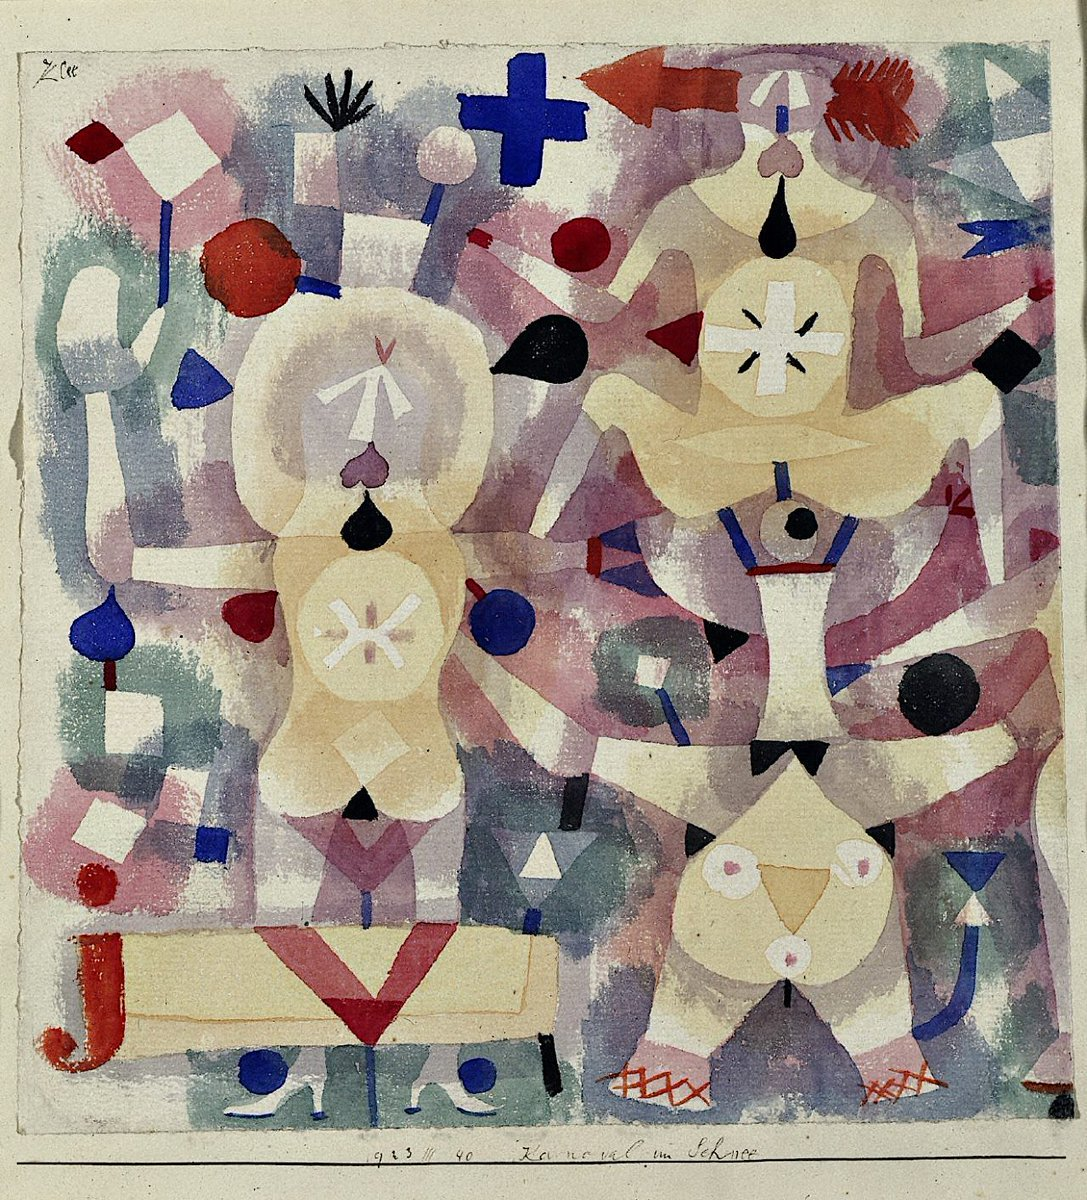 an introduction to the life of paul klee a swiss painter and graphic artist A retrospective exhibition by paul klee] felix klee (introduction  work on the life of paul klee  of paul kee (1879-1940) swiss-german painter.